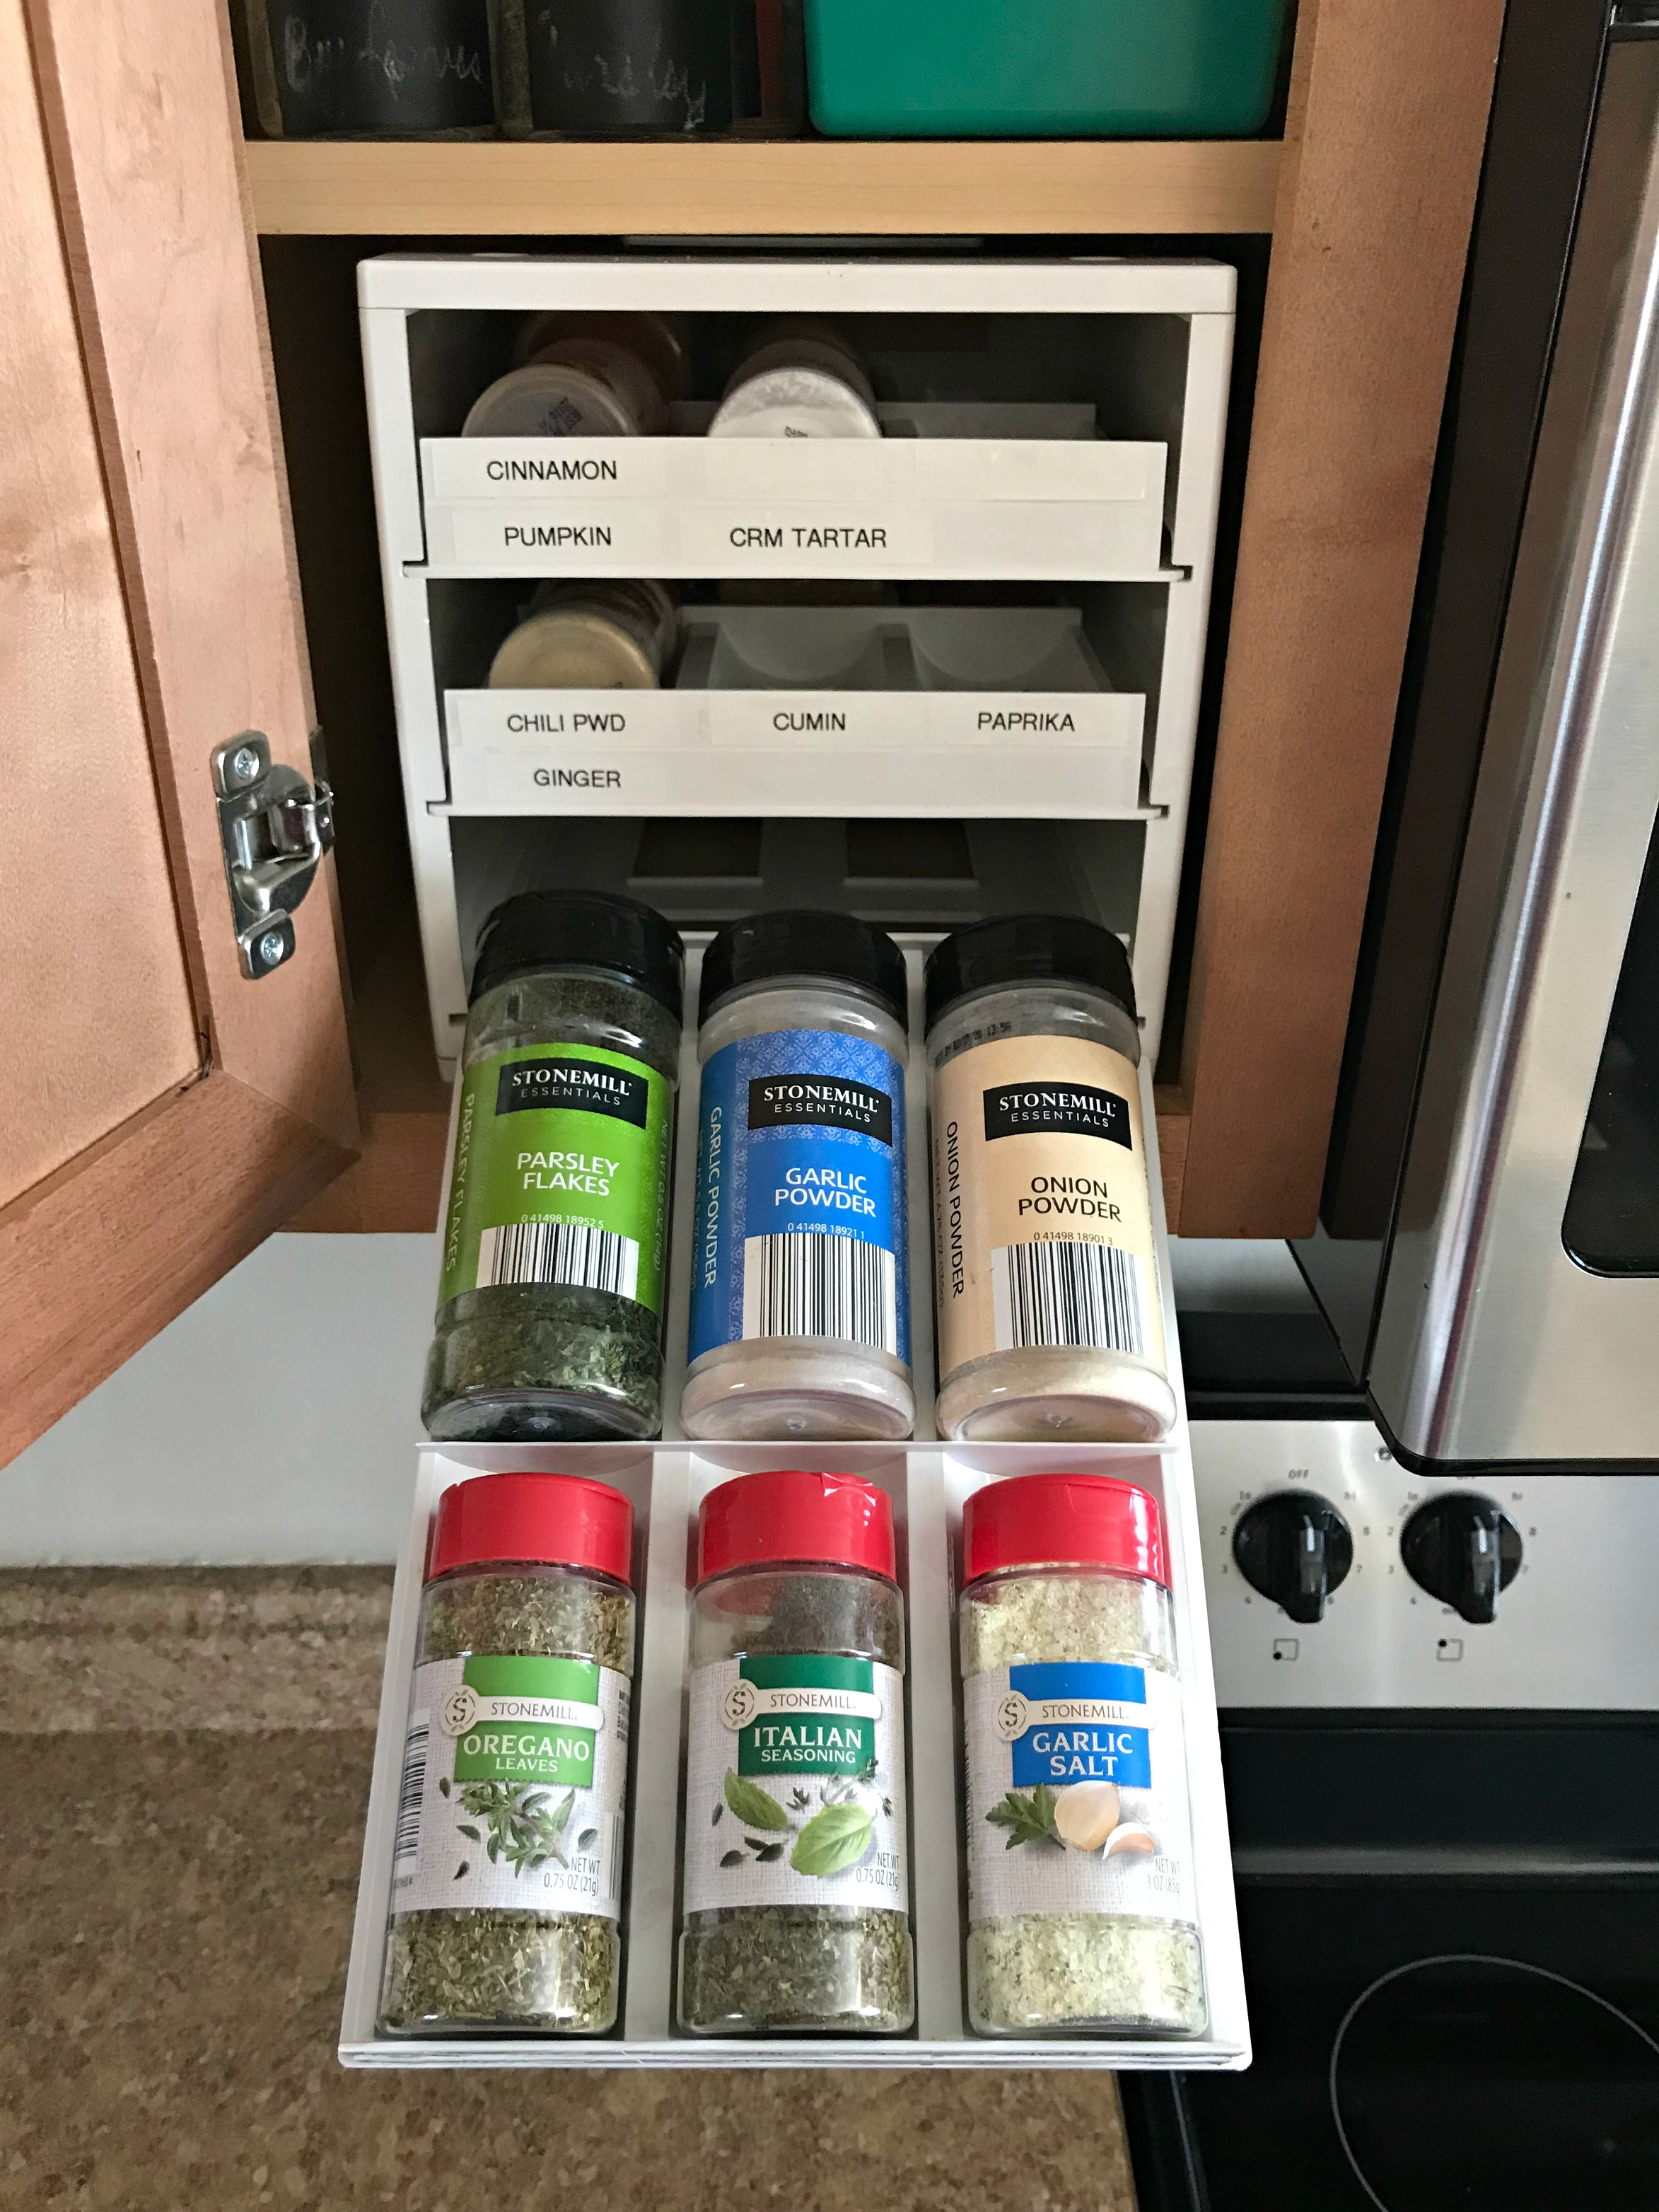 Sometimes The Smallest Things Make A Huge Difference! You Might Not Find  This System To Be The Best For You, But I Challenge You To Just Look At  Your Spices ...